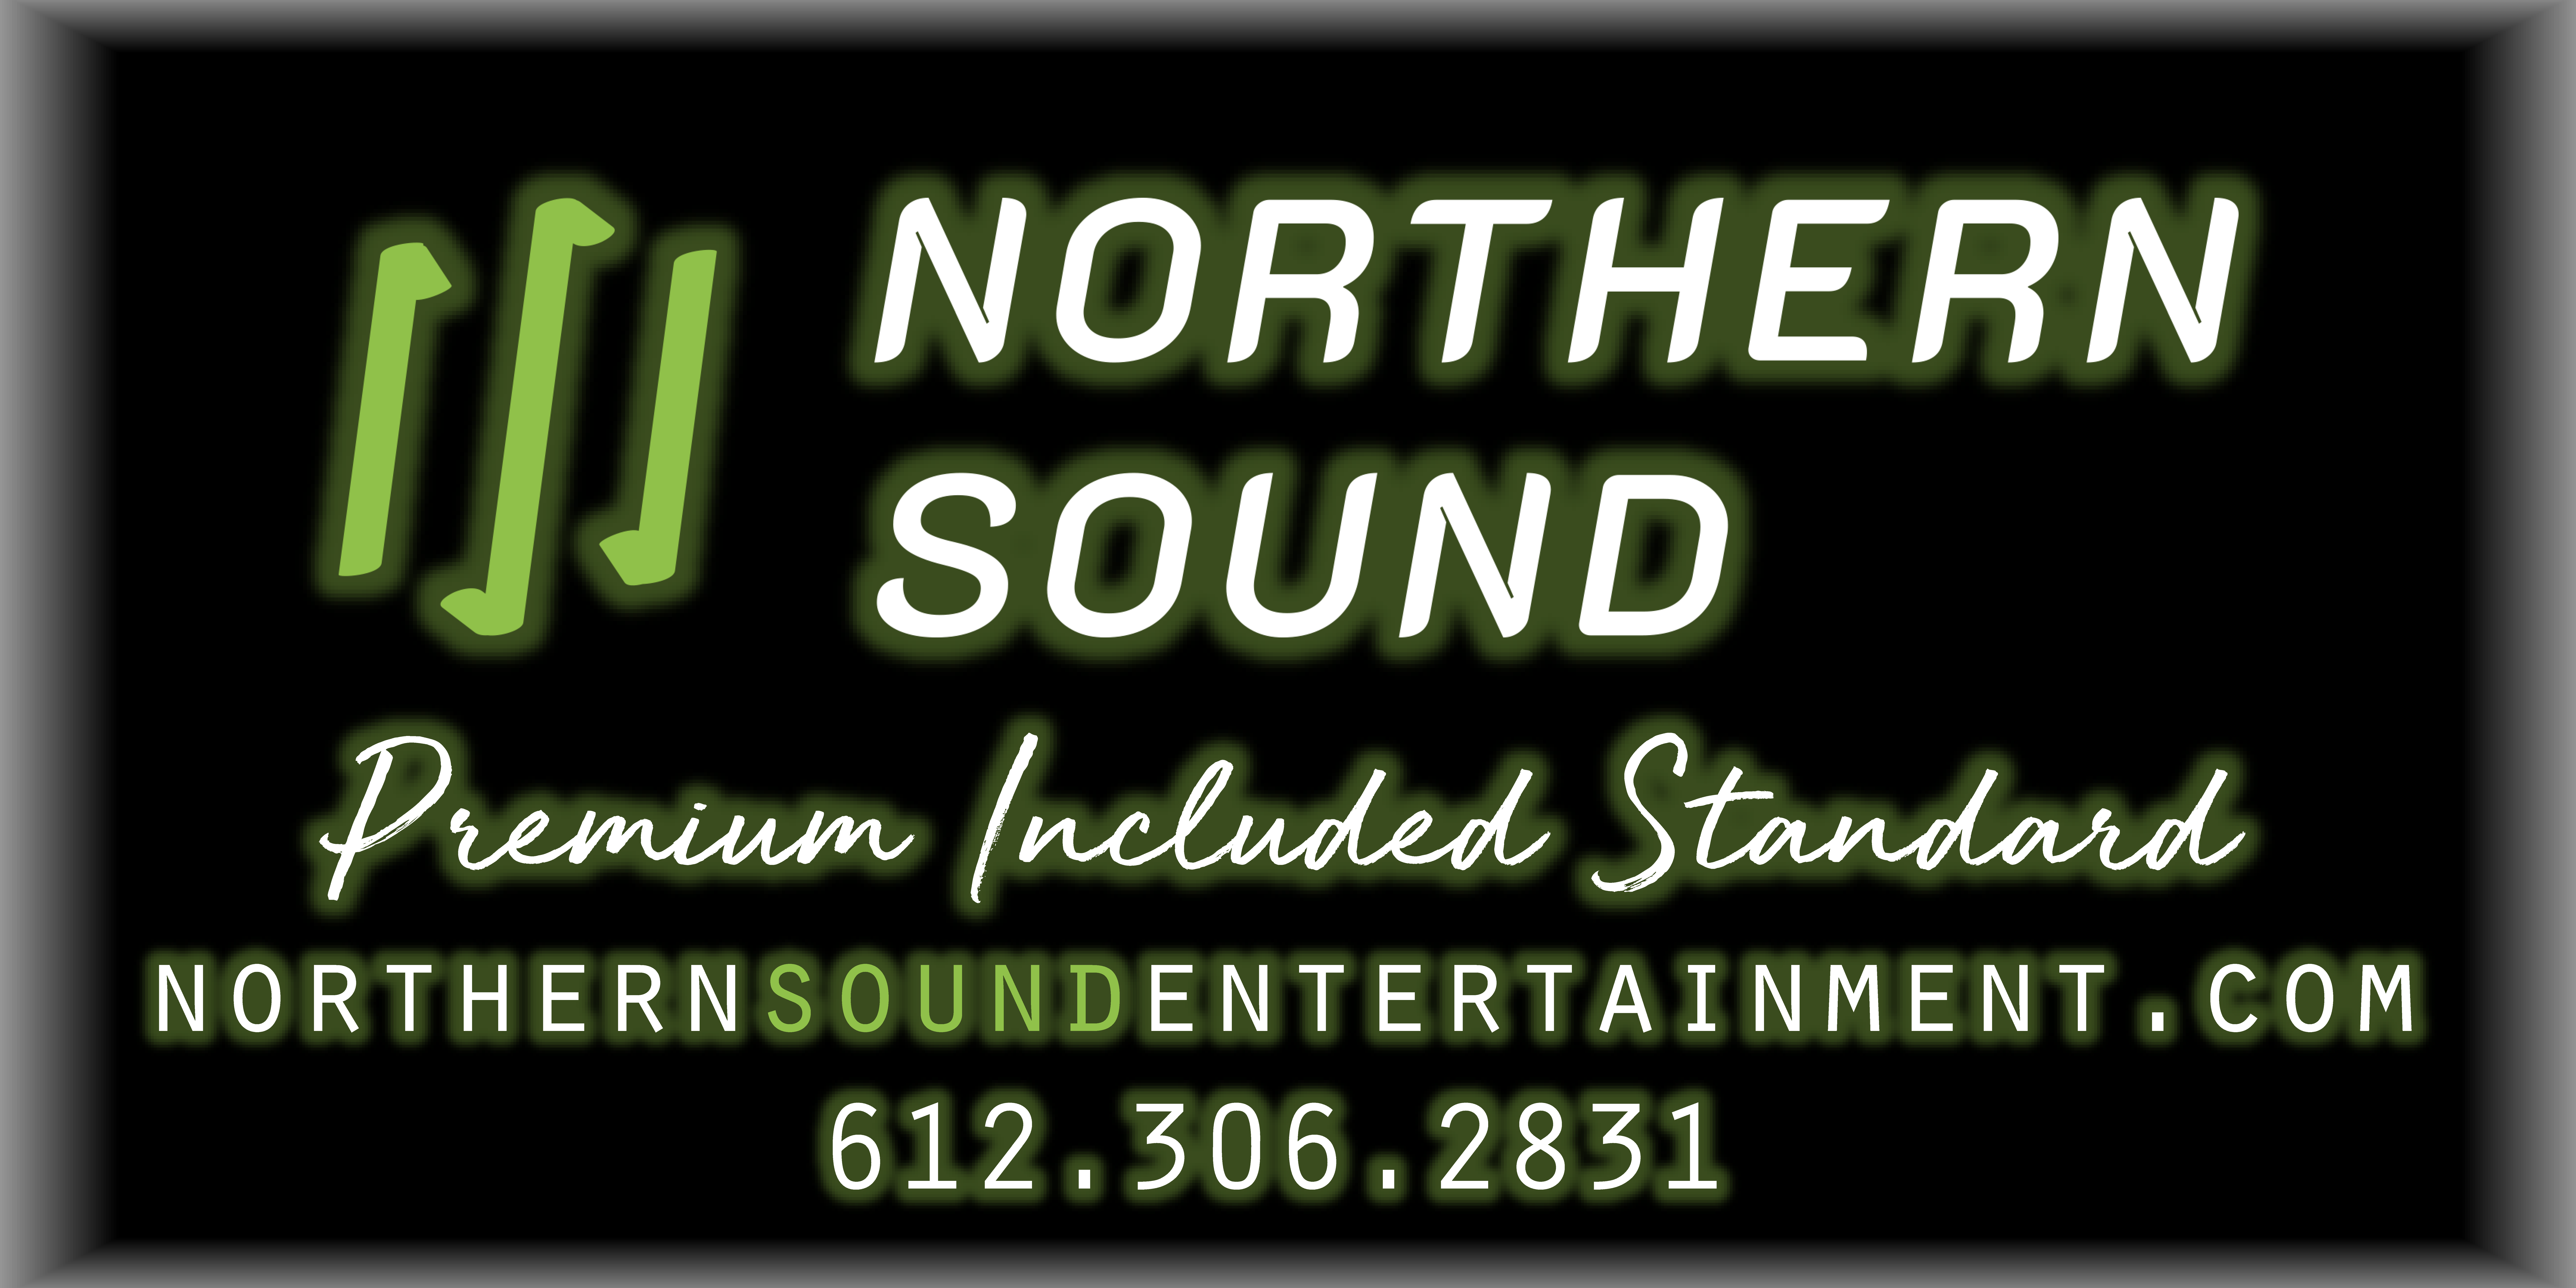 Northern Sound Entertainment, profile image